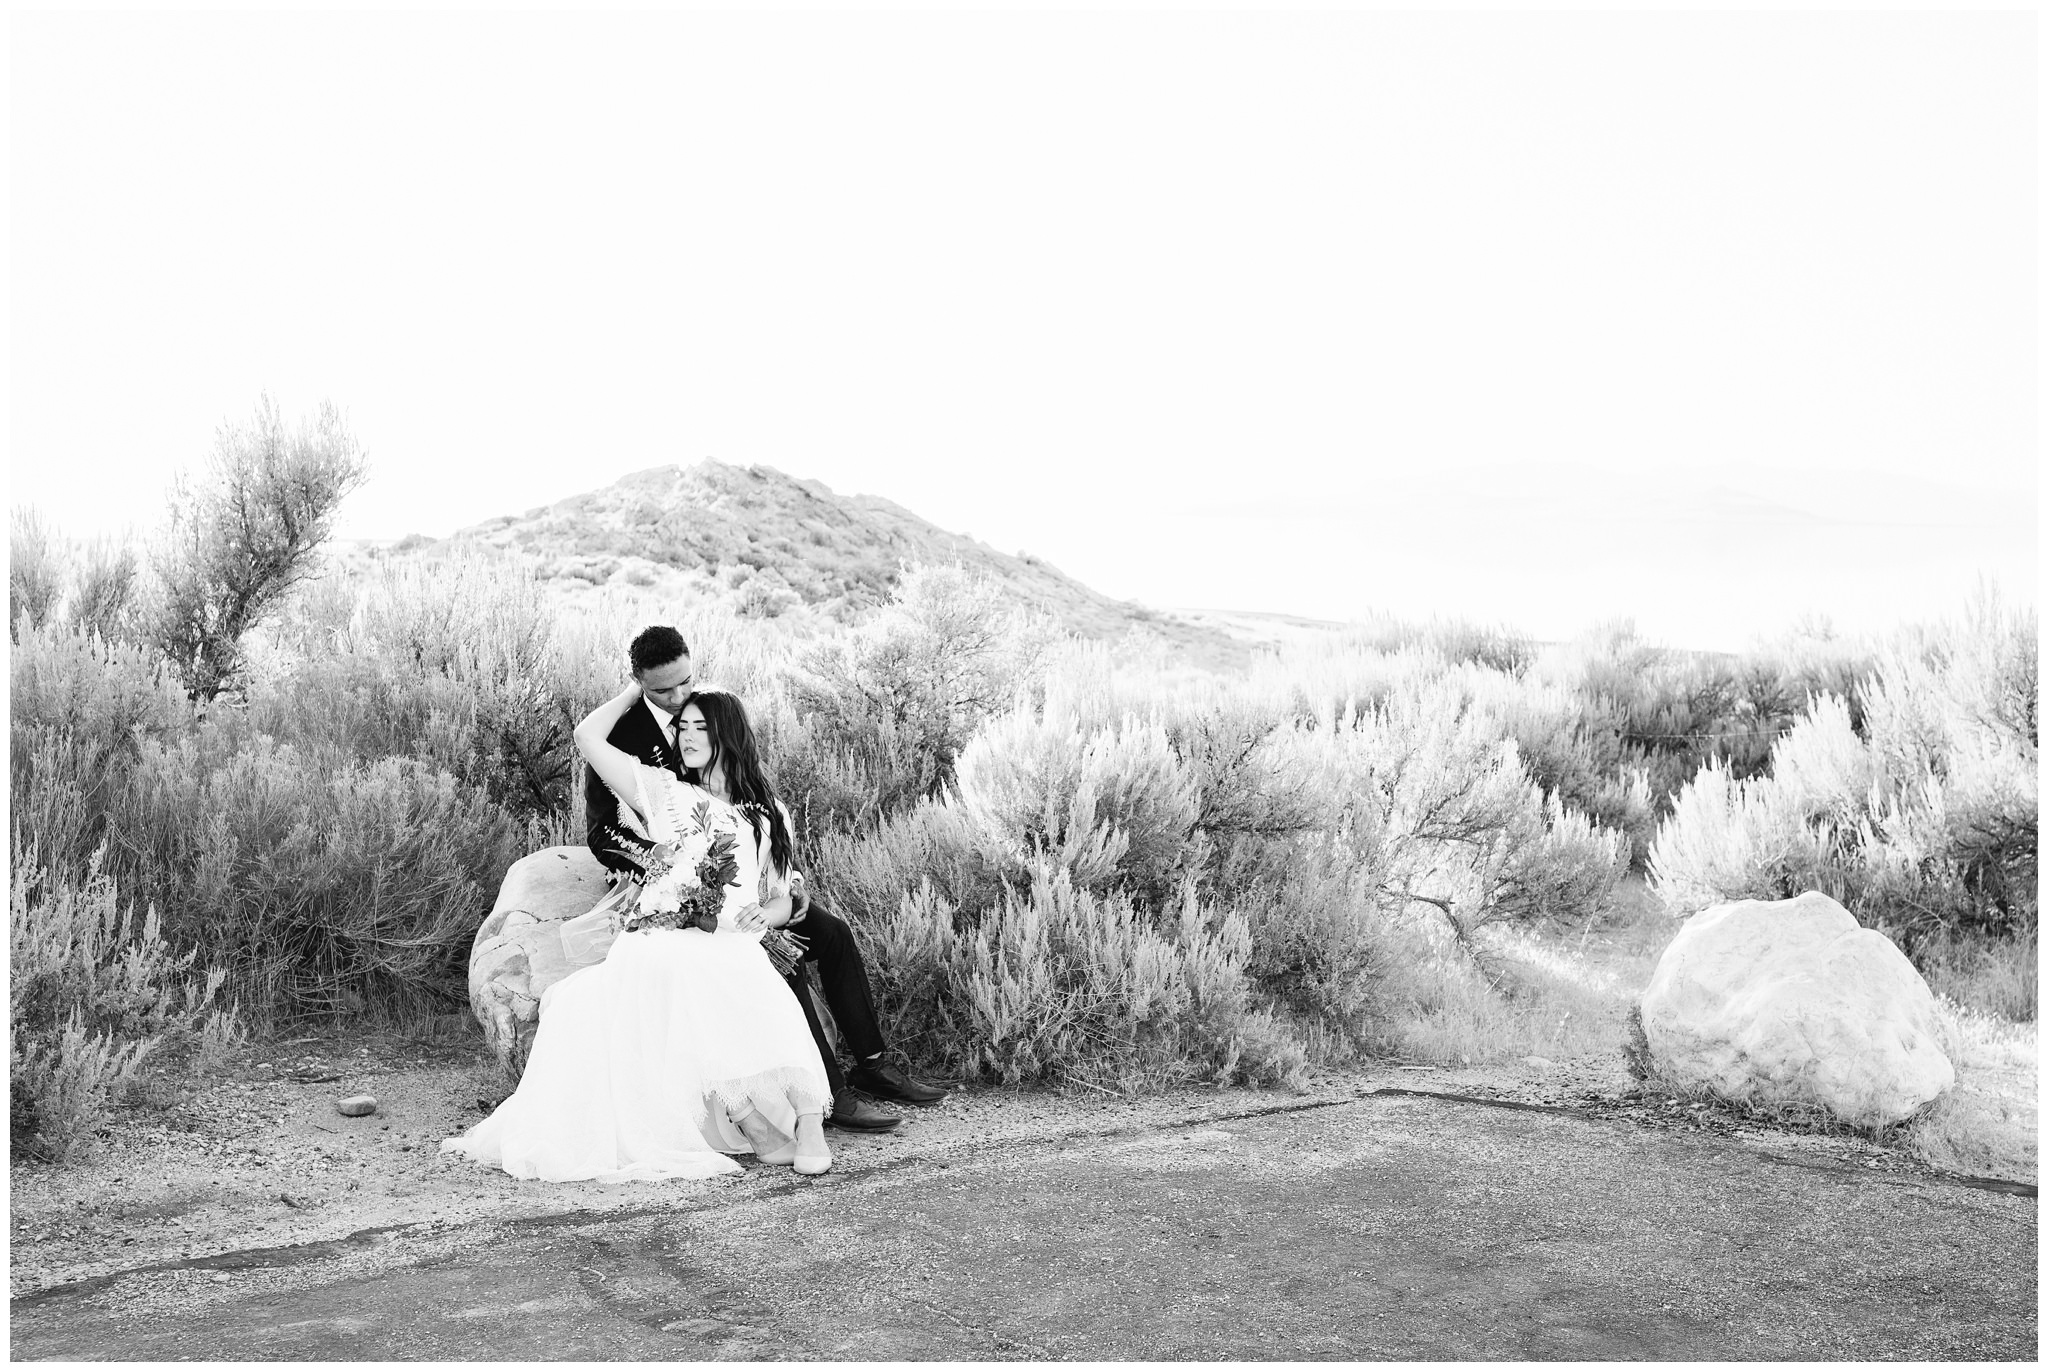 Bride and groom sitting on a rock snuggling at Lady finger point on Antelope island in Utah near SLC